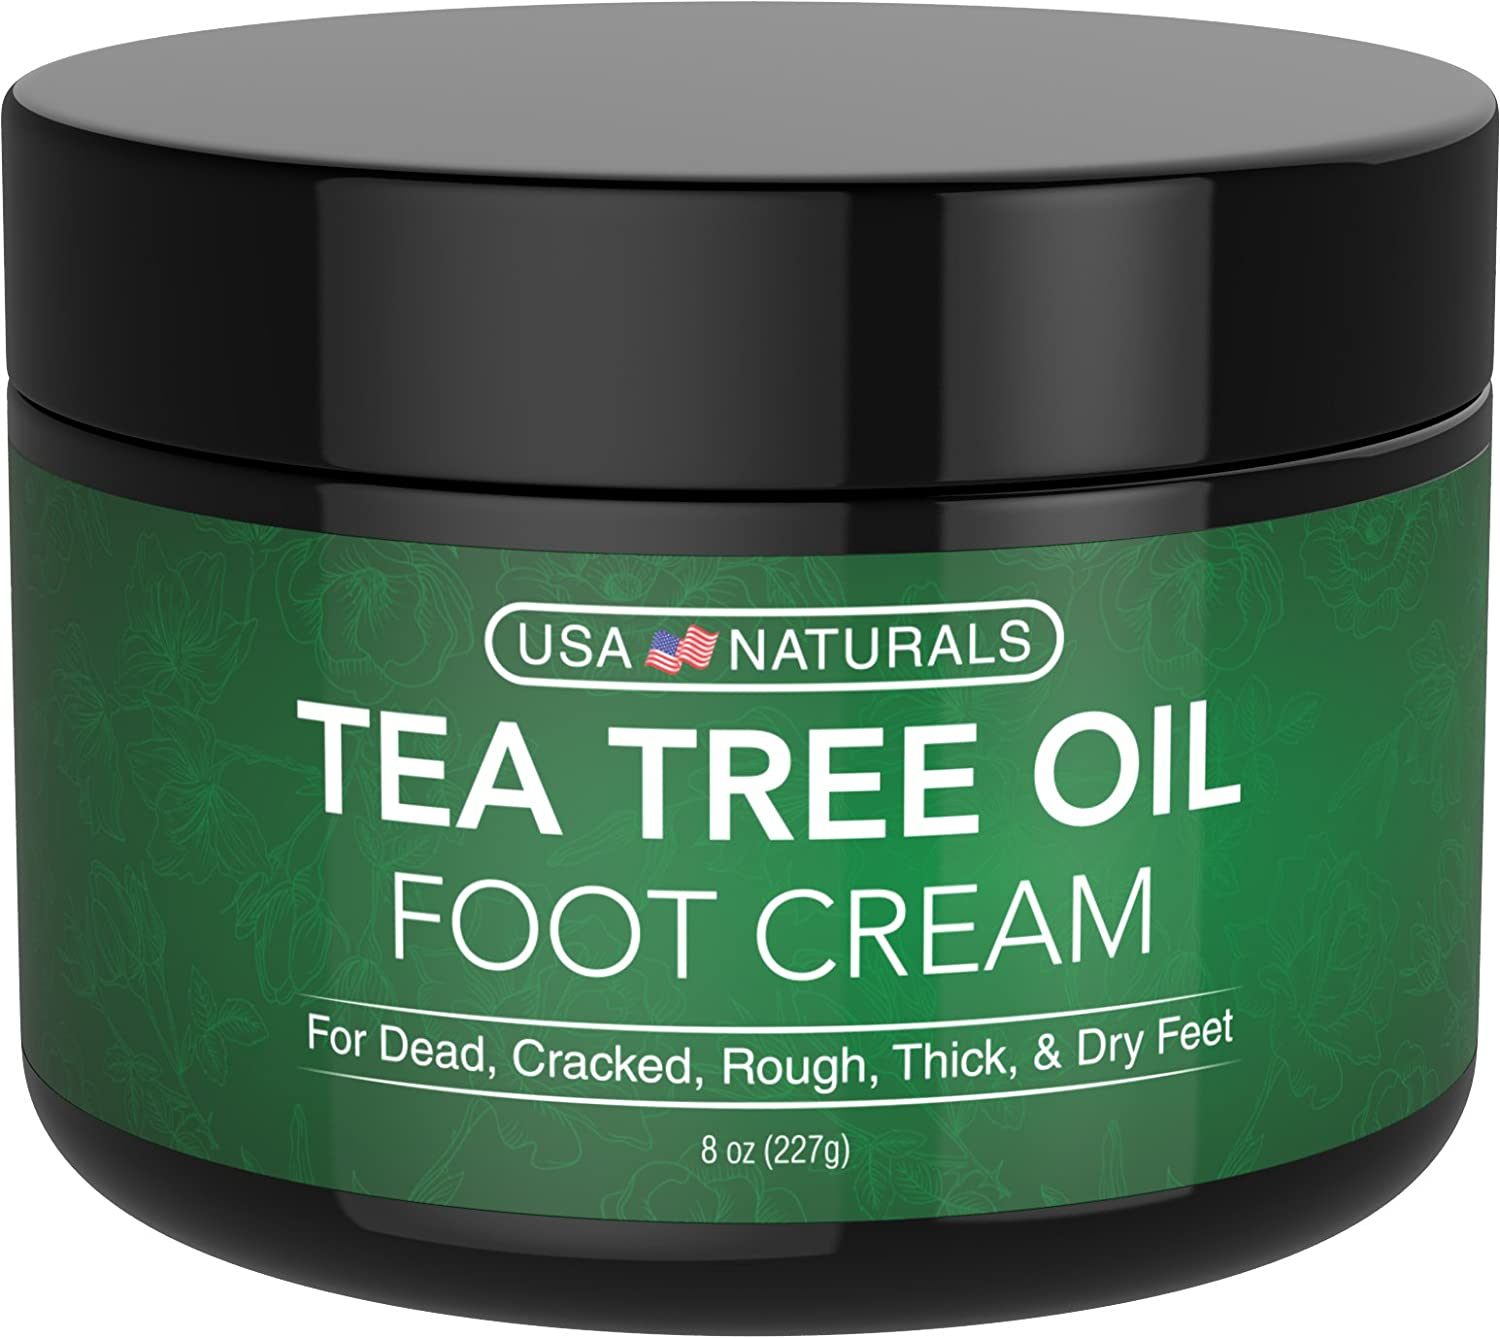 Tea Tree Oil Foot Cream - Instantly Hydrates and Moisturizes Cracked or Callused Feet - Rapid Relief Heel Cream - Antifungal Treatment Helps & Soothes Irritated Skin, Athletes Foot, Body Acne USA Naturals 4oz Foot Cream